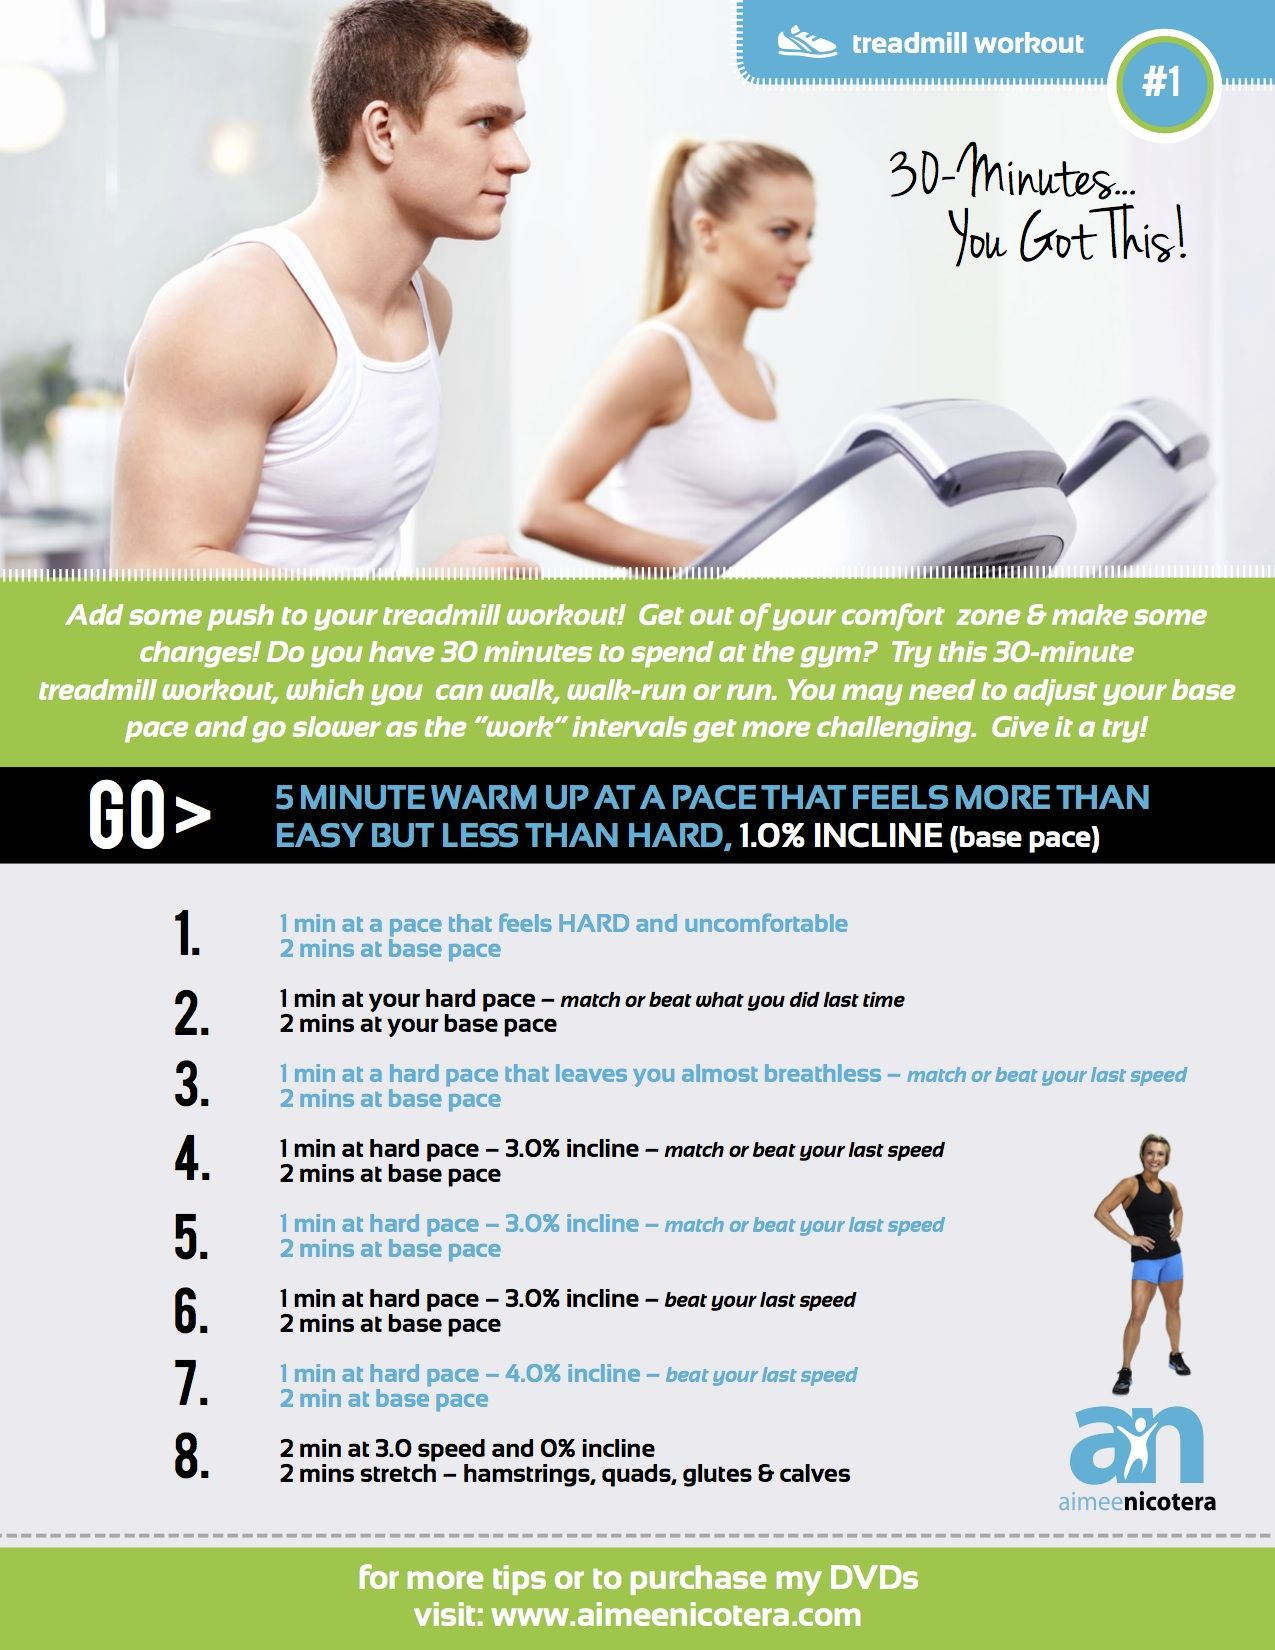 Treadmill Workout Running Tips Fitness Keep The Pounds Off This Holiday Season Fitness